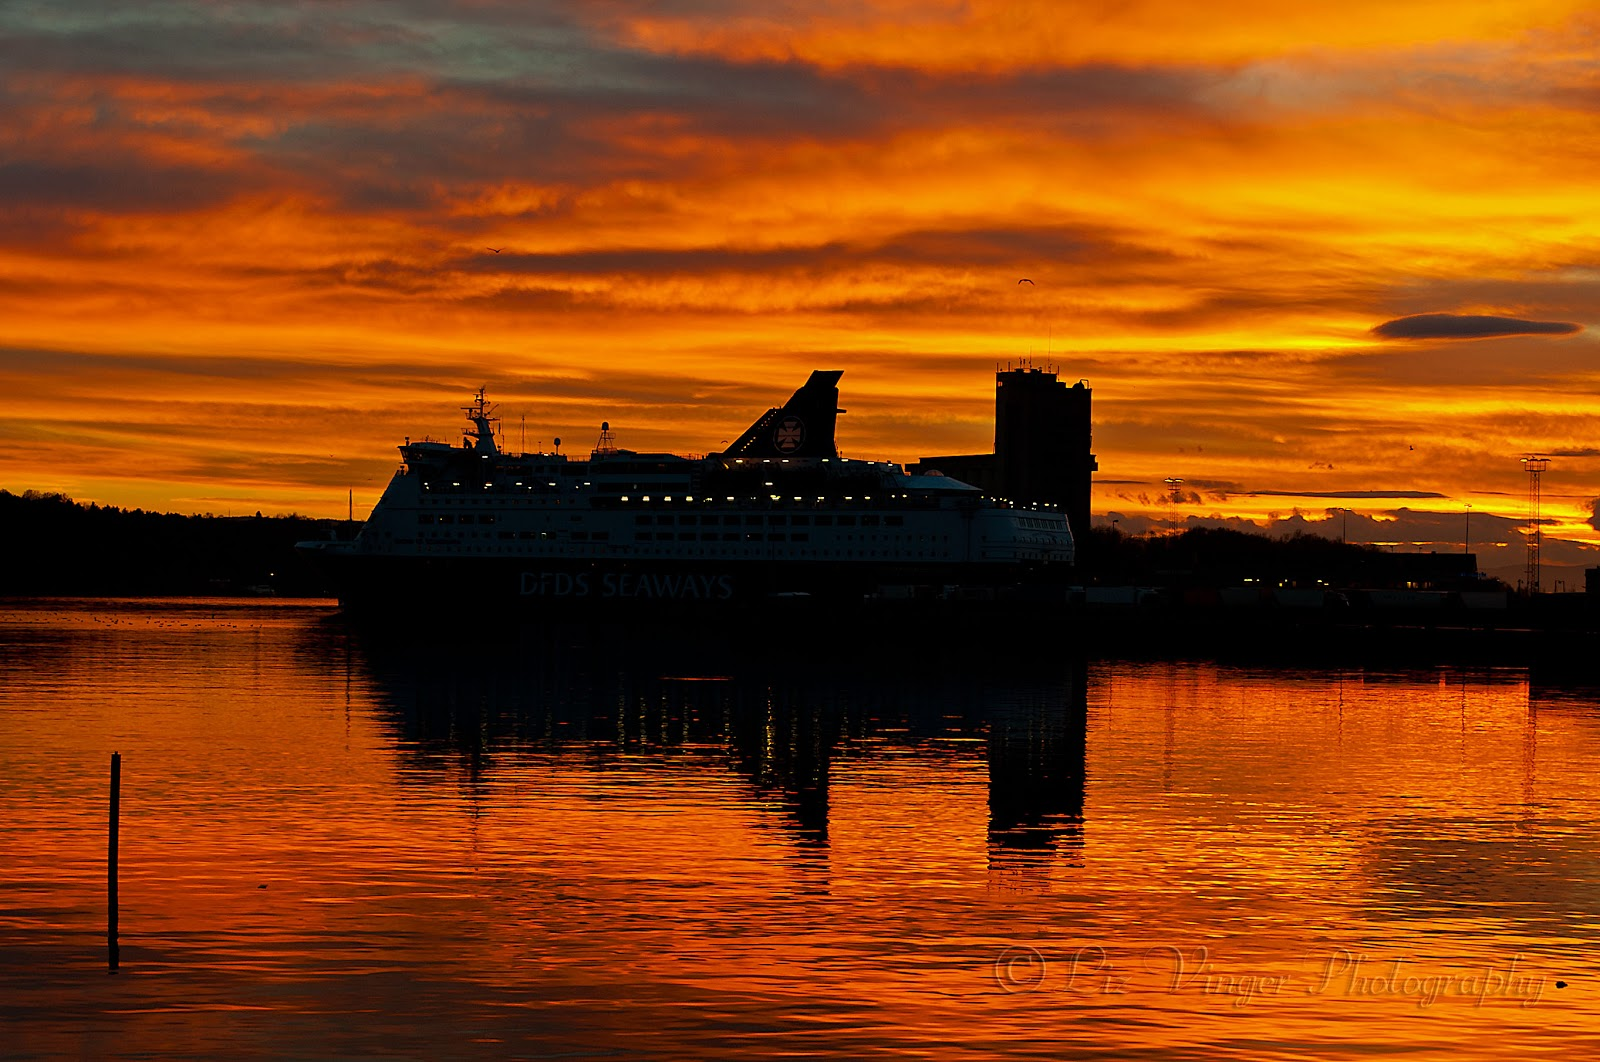 Sunset over Oslo and the DFDS Seaways ferry